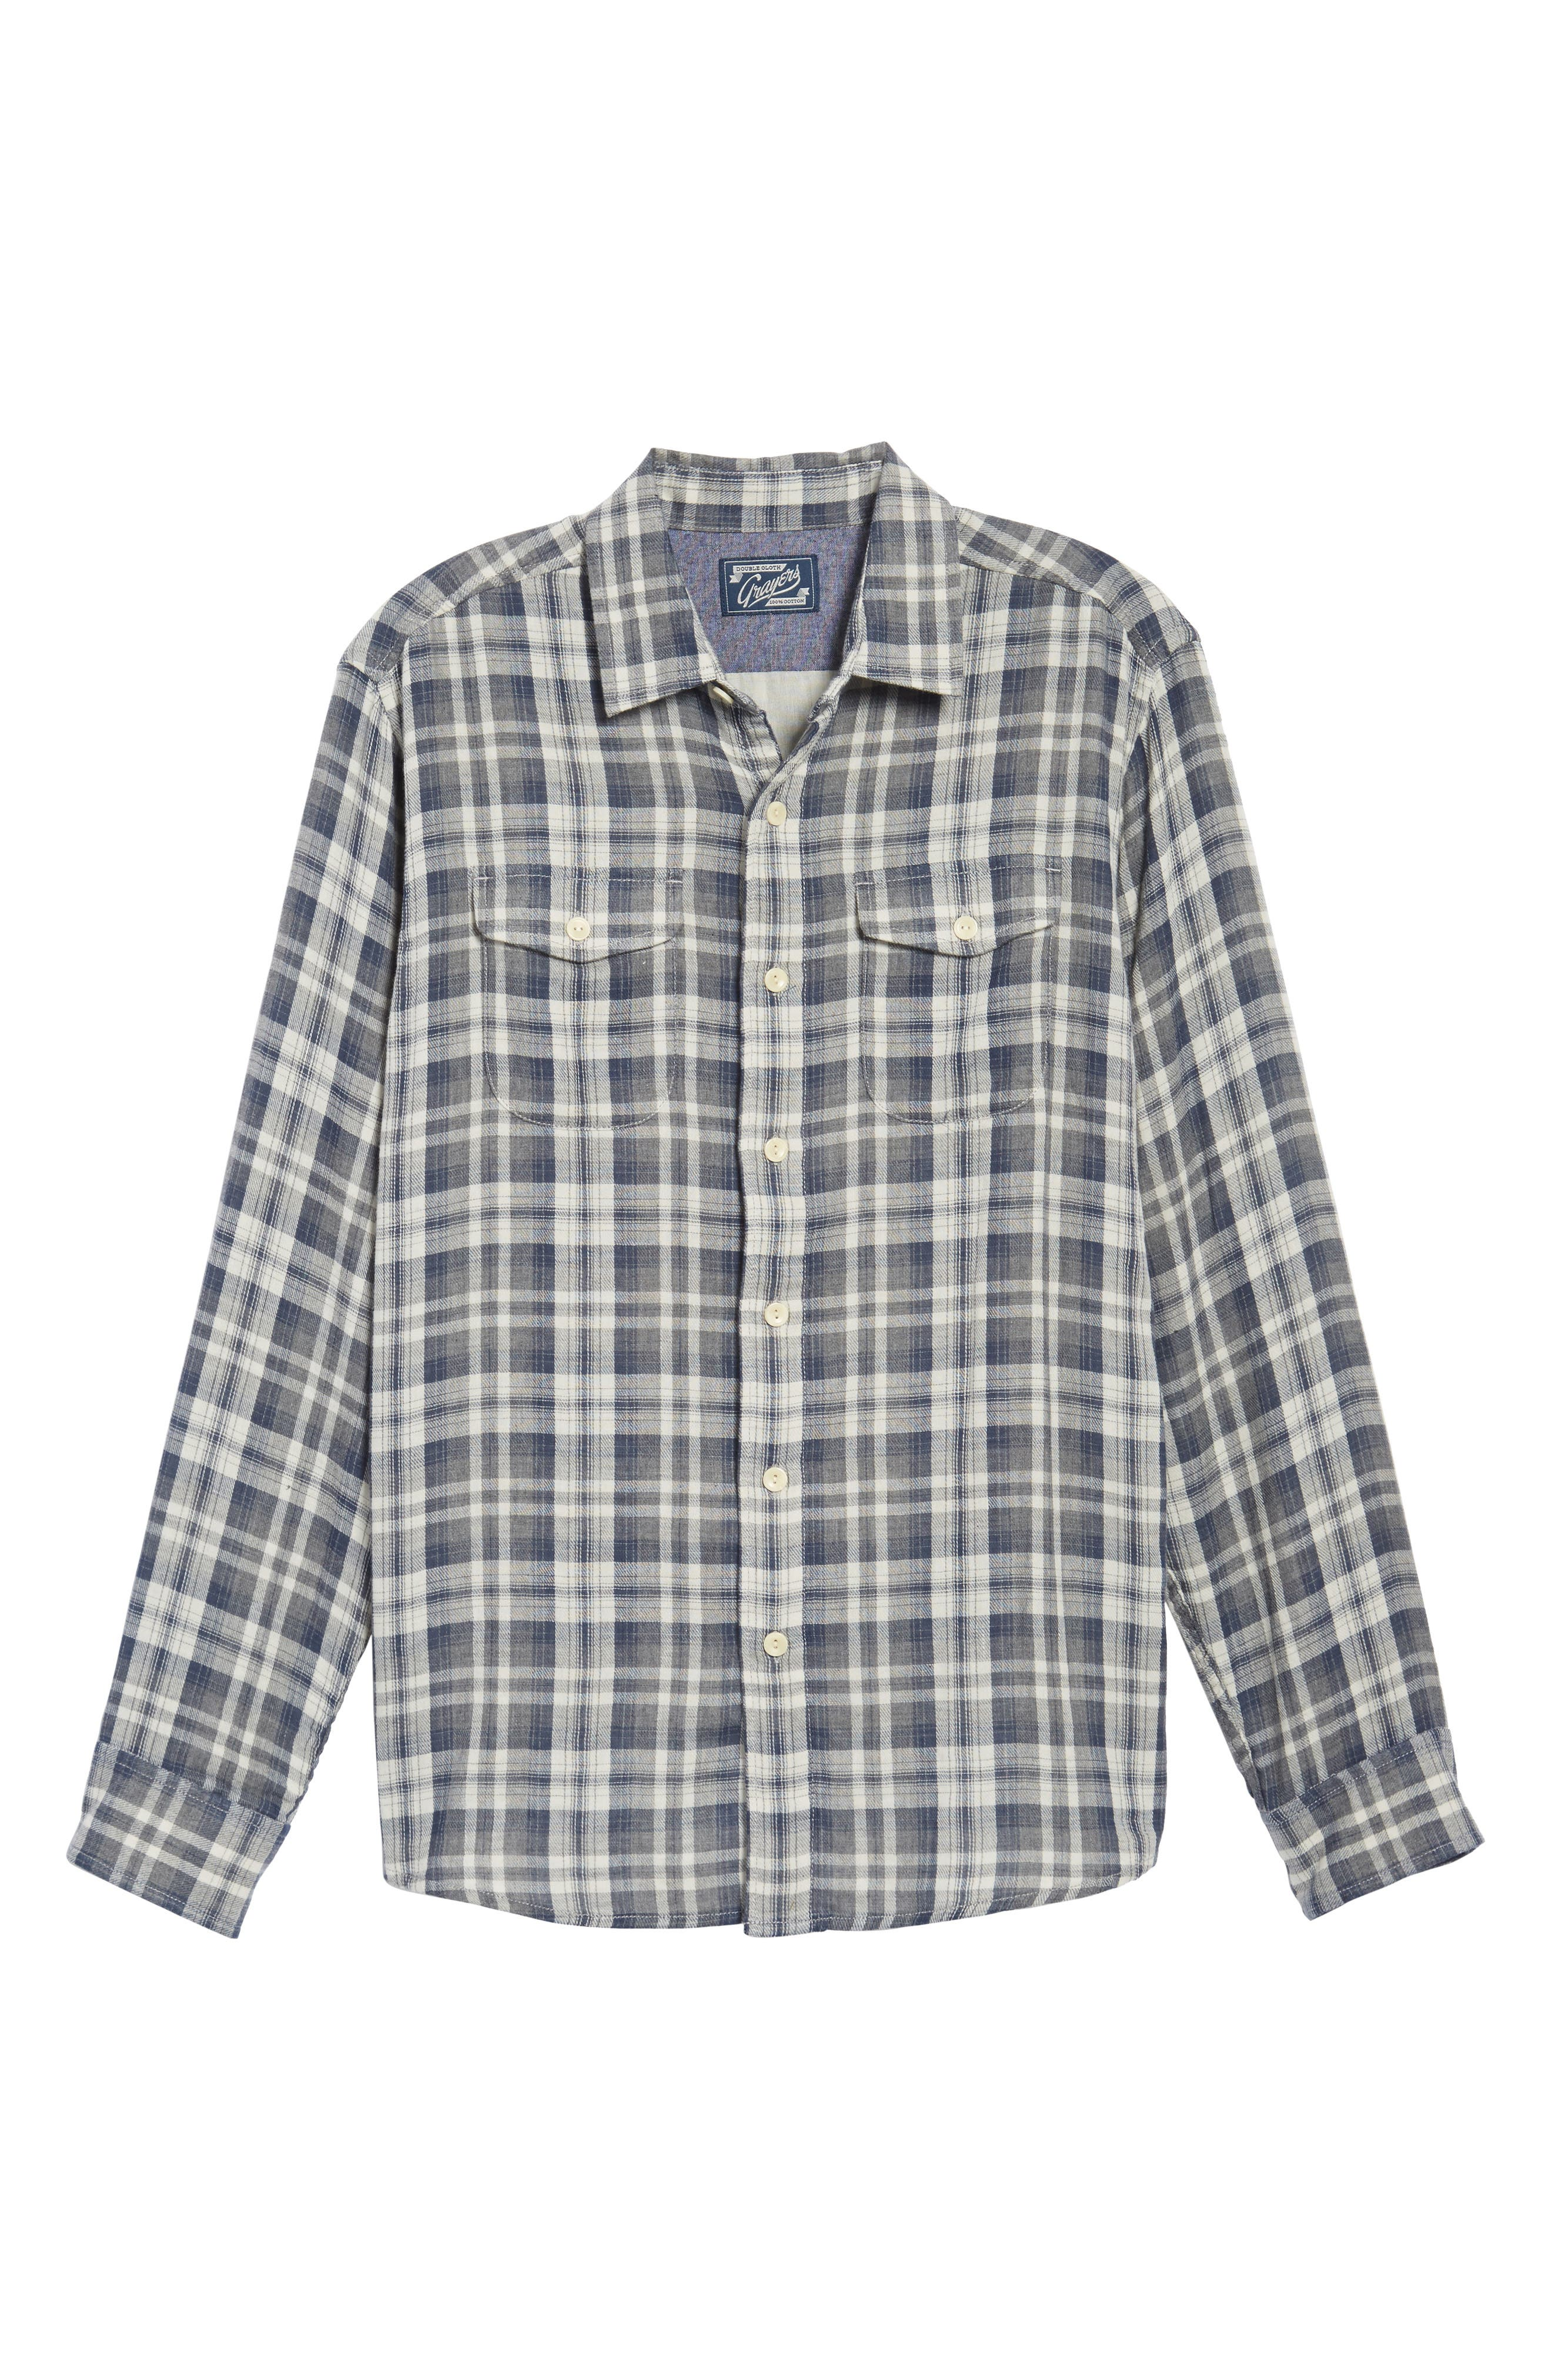 Saratoga Modern Fit Plaid Double Cloth Sport Shirt,                             Alternate thumbnail 6, color,                             Charcoal Navy Stone